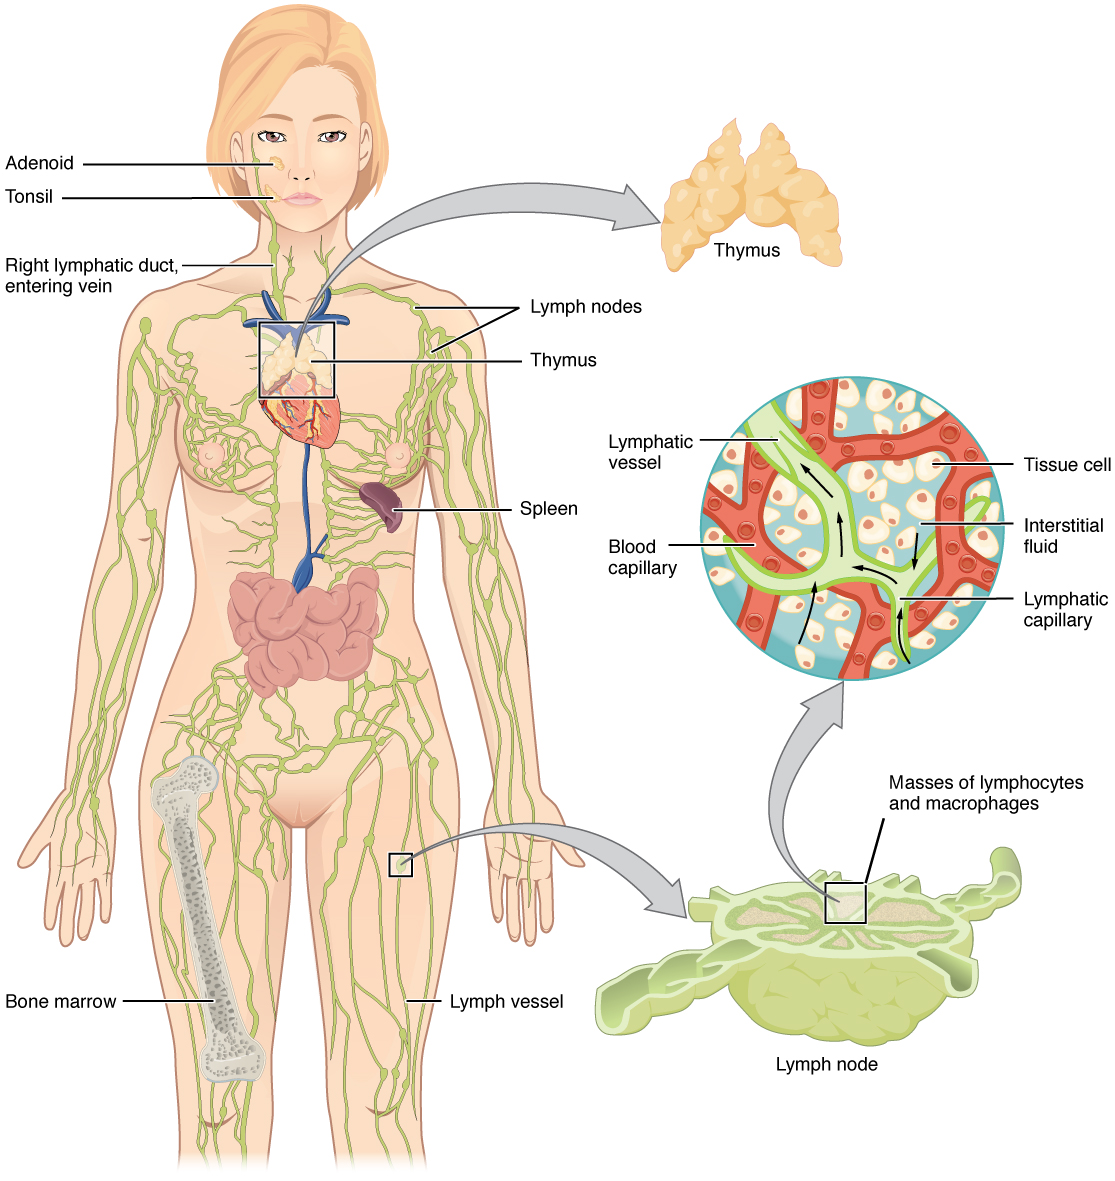 Anatomy and Physiology - Anatomy of the Lymphatic and Immune Systems